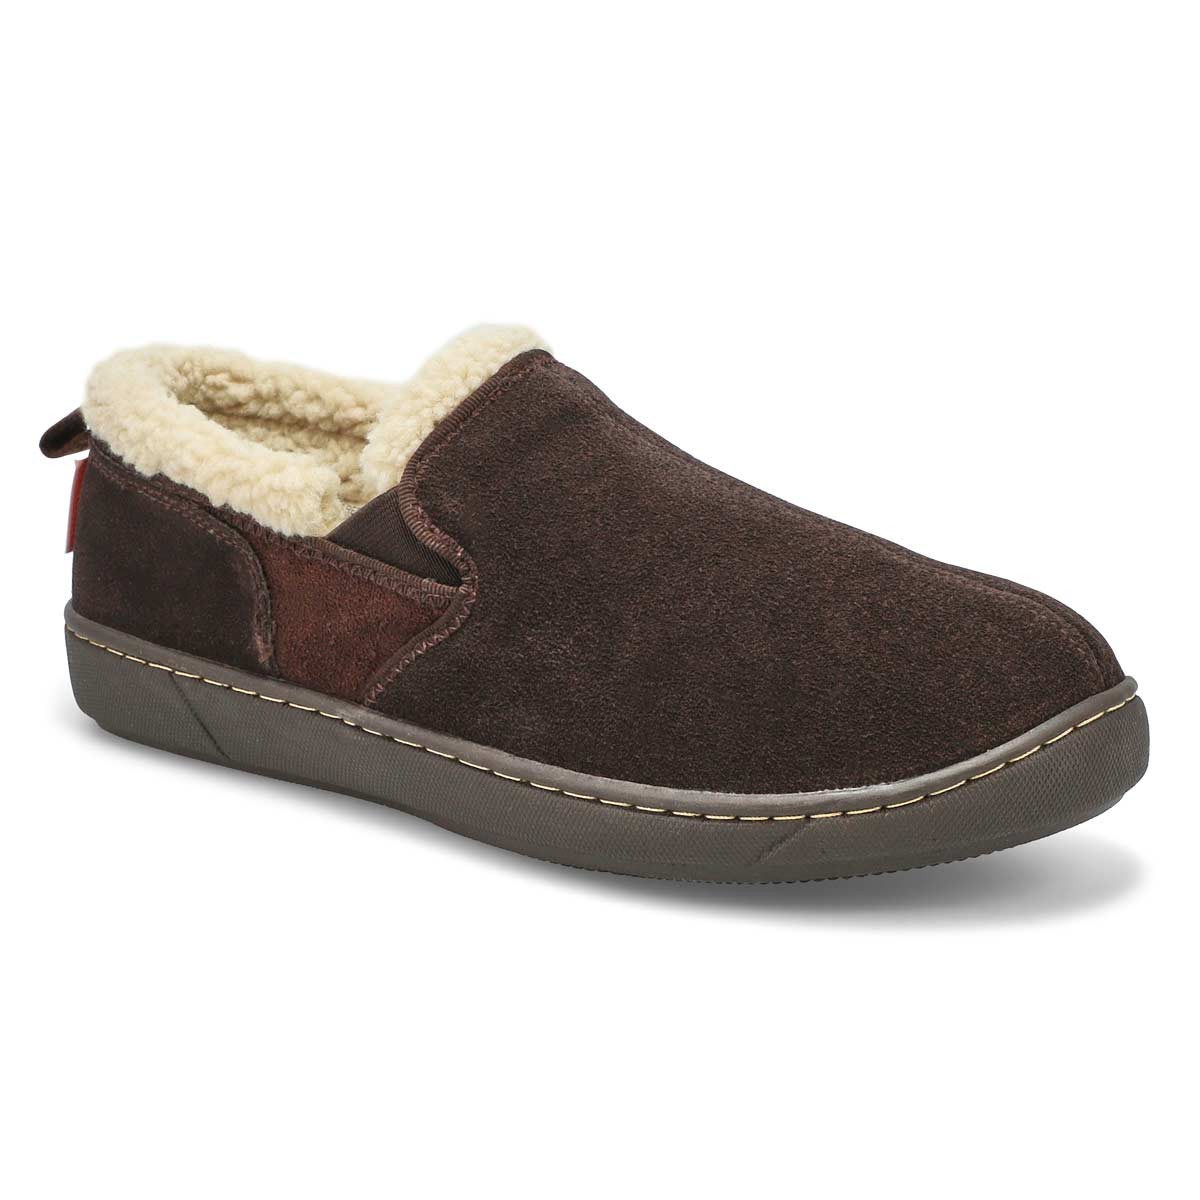 Men's REPETE rootbeer memory foam slippers